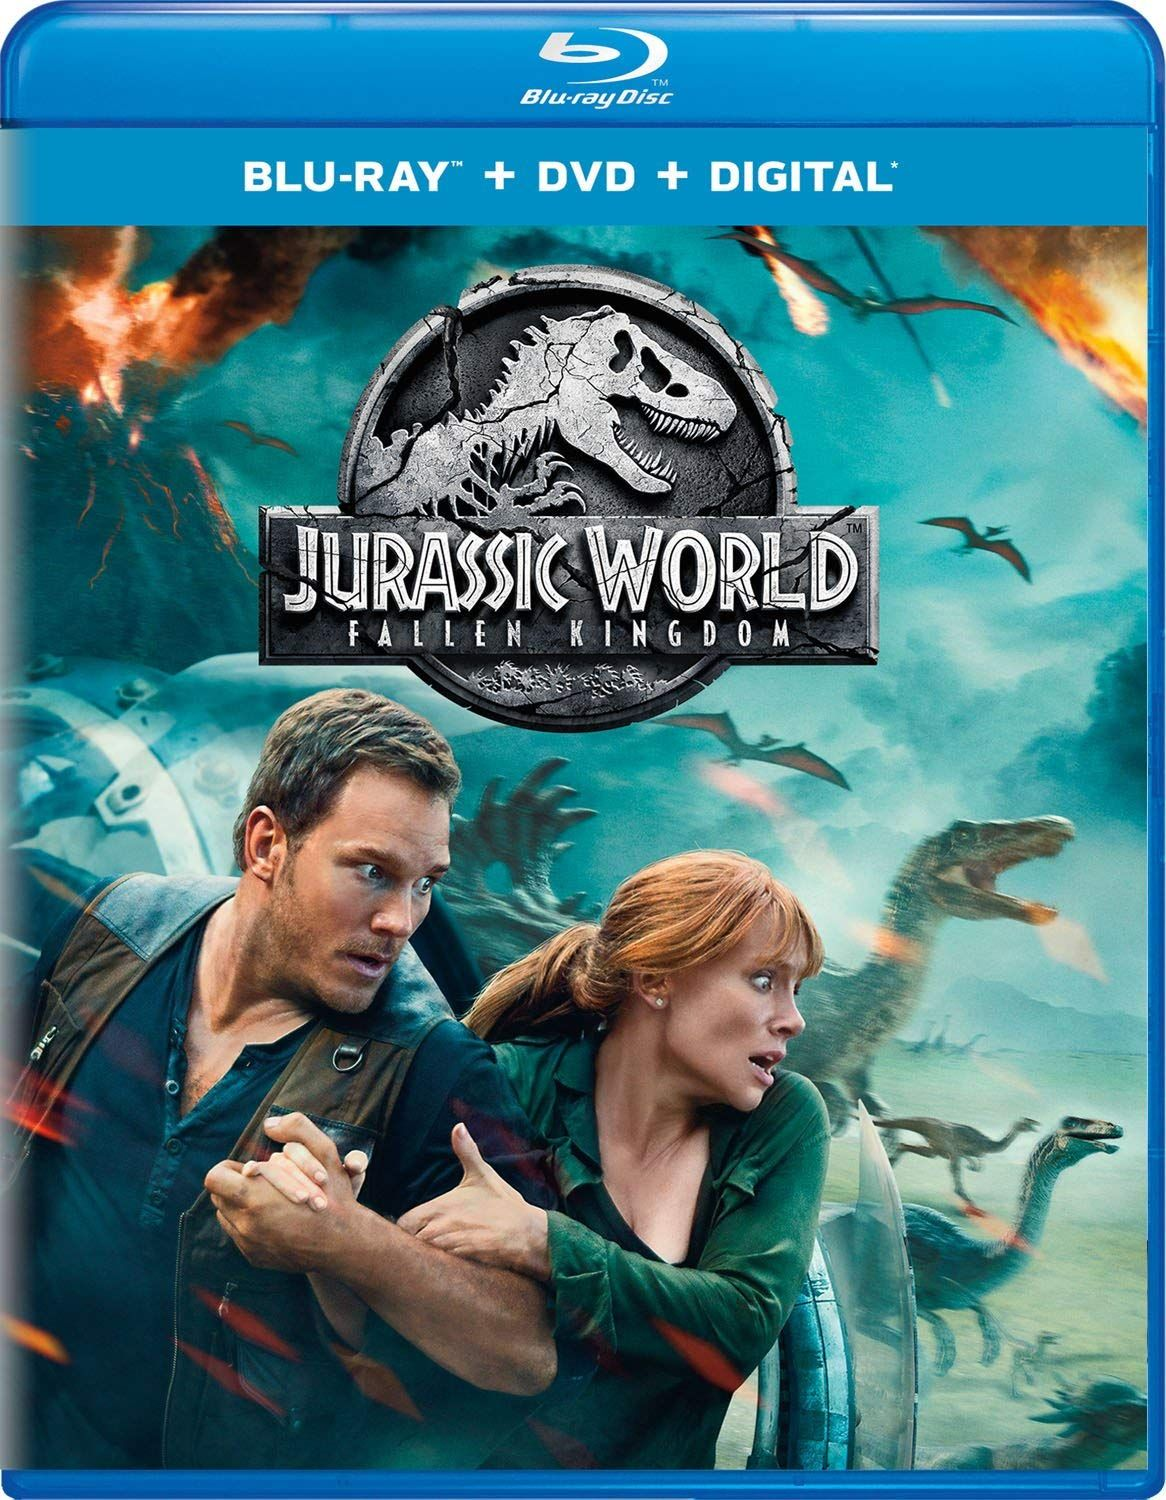 j a bayona on jurassic world 2 deleted scenes and steven spielberg